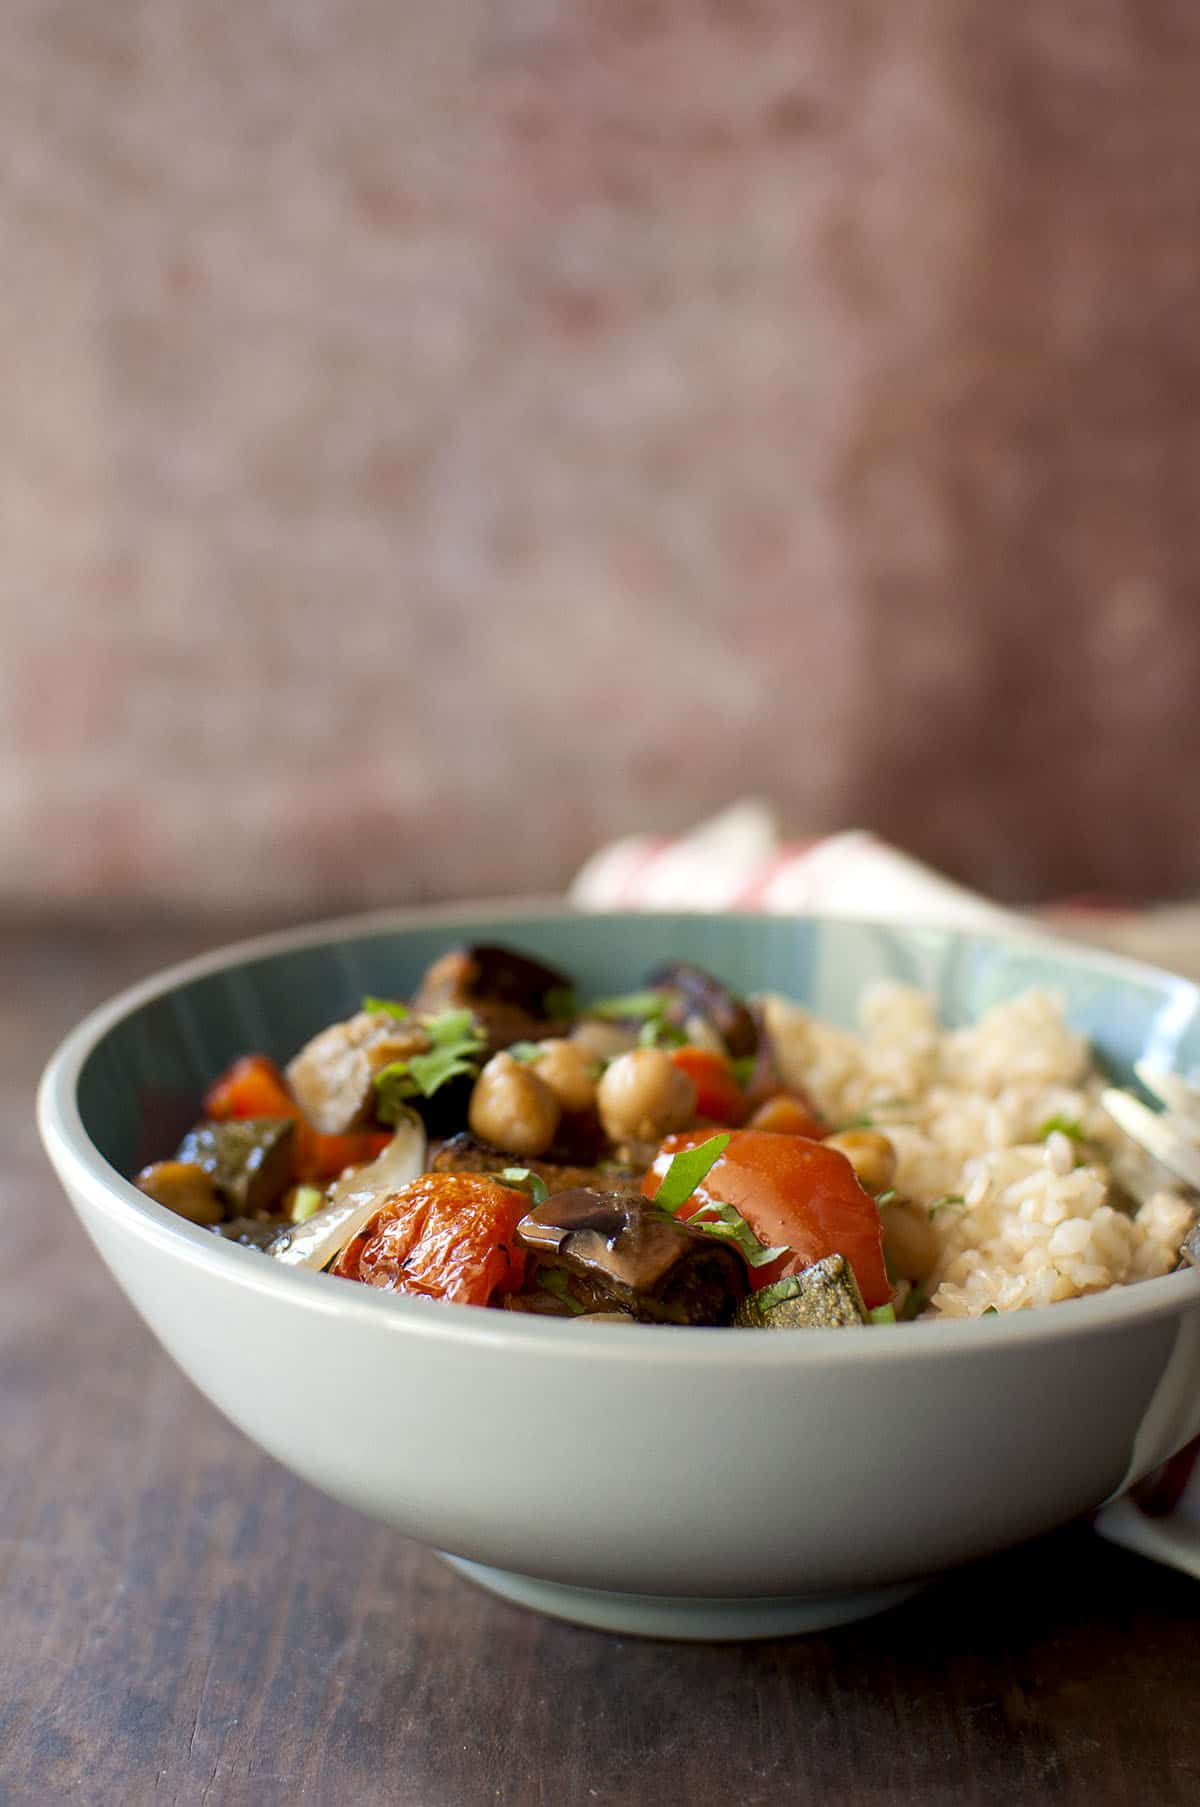 Grey bowl with brown rice and roasted vegetables